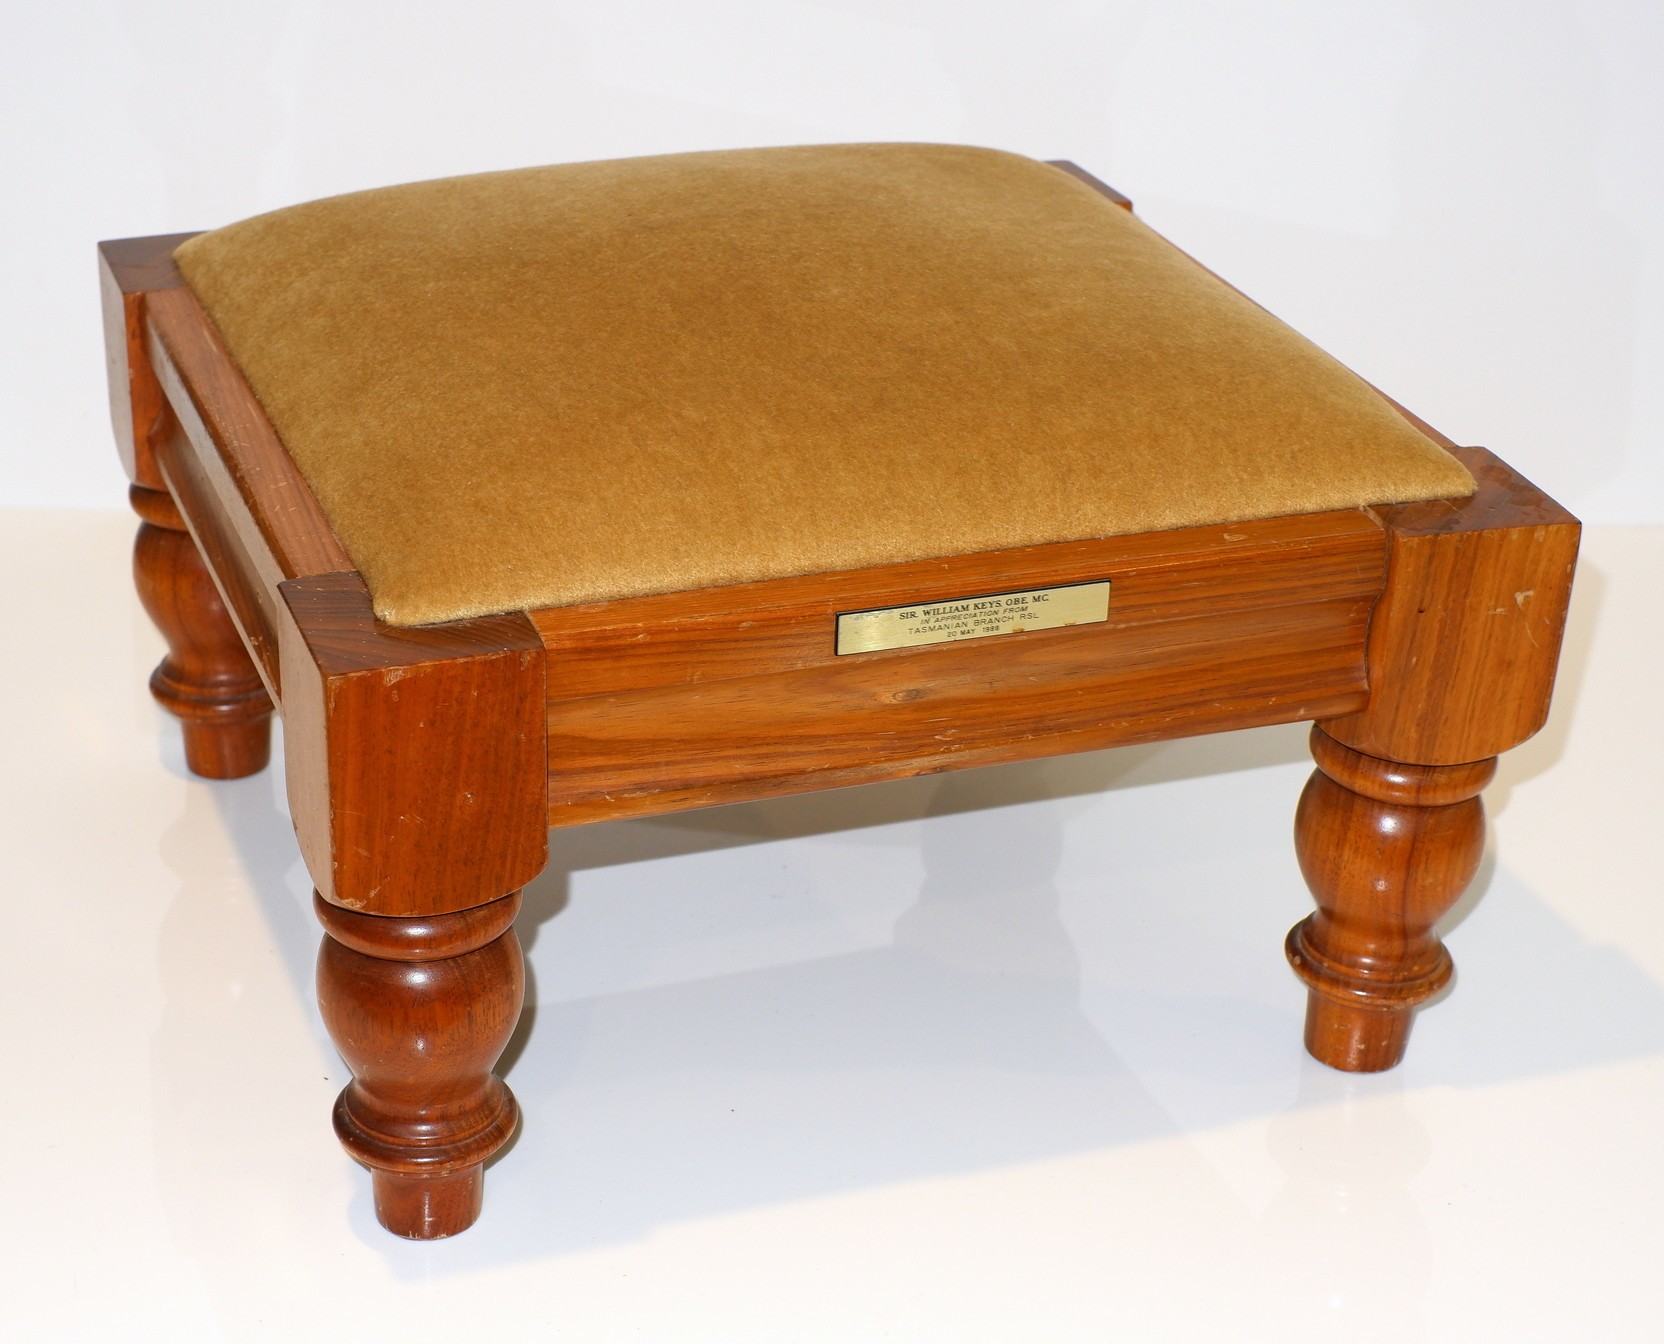 'Tasmanian Blackwood Stool Presented to Sir William Keys by the Tasmanian RSL Branch'